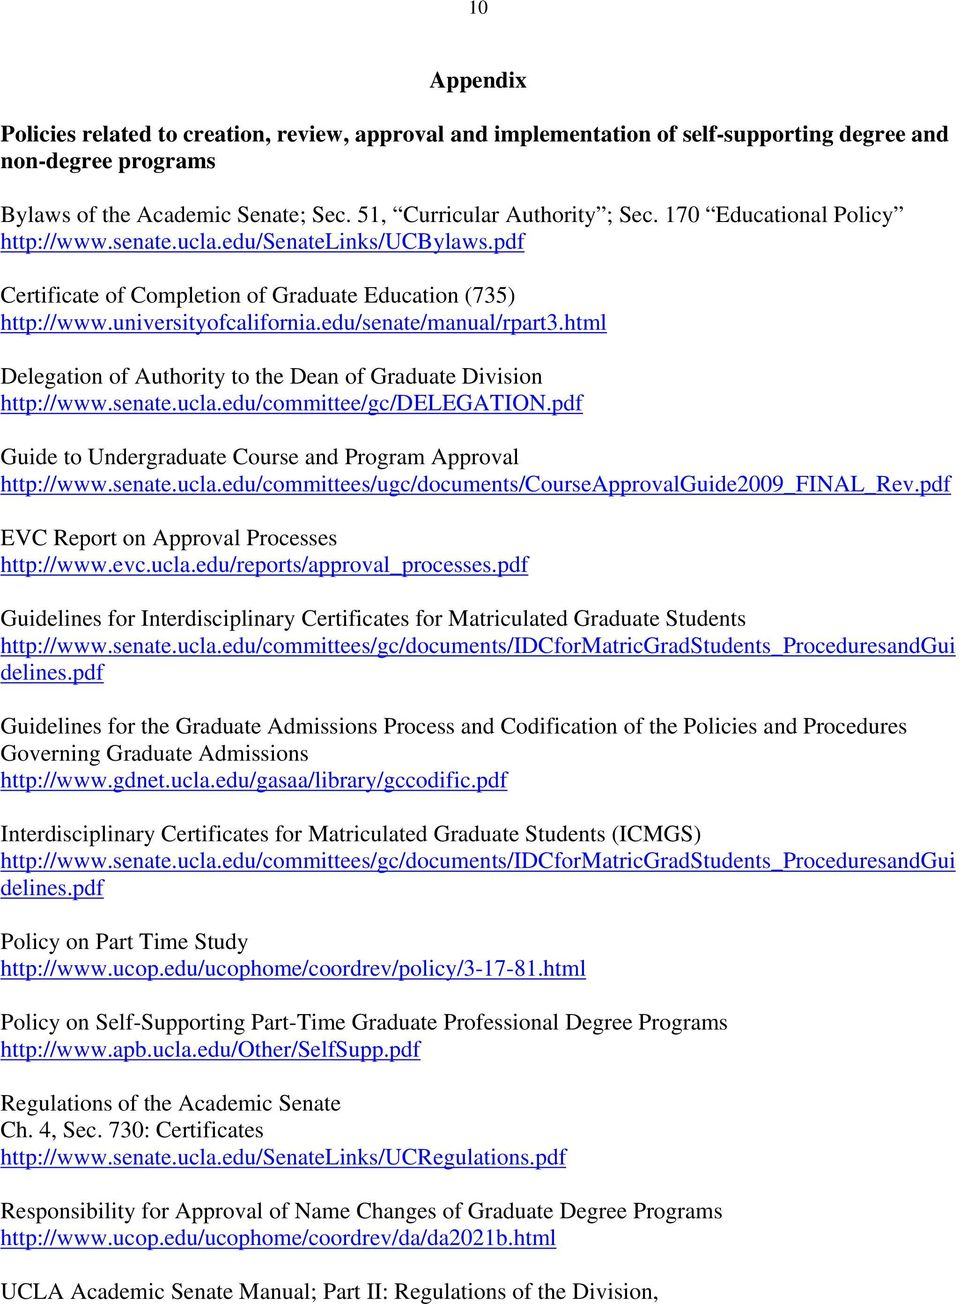 html Delegation of Authority to the Dean of Graduate Division http://www.senate.ucla.edu/committee/gc/delegation.pdf Guide to Undergraduate Course and Program Approval http://www.senate.ucla.edu/committees/ugc/documents/courseapprovalguide2009_final_rev.